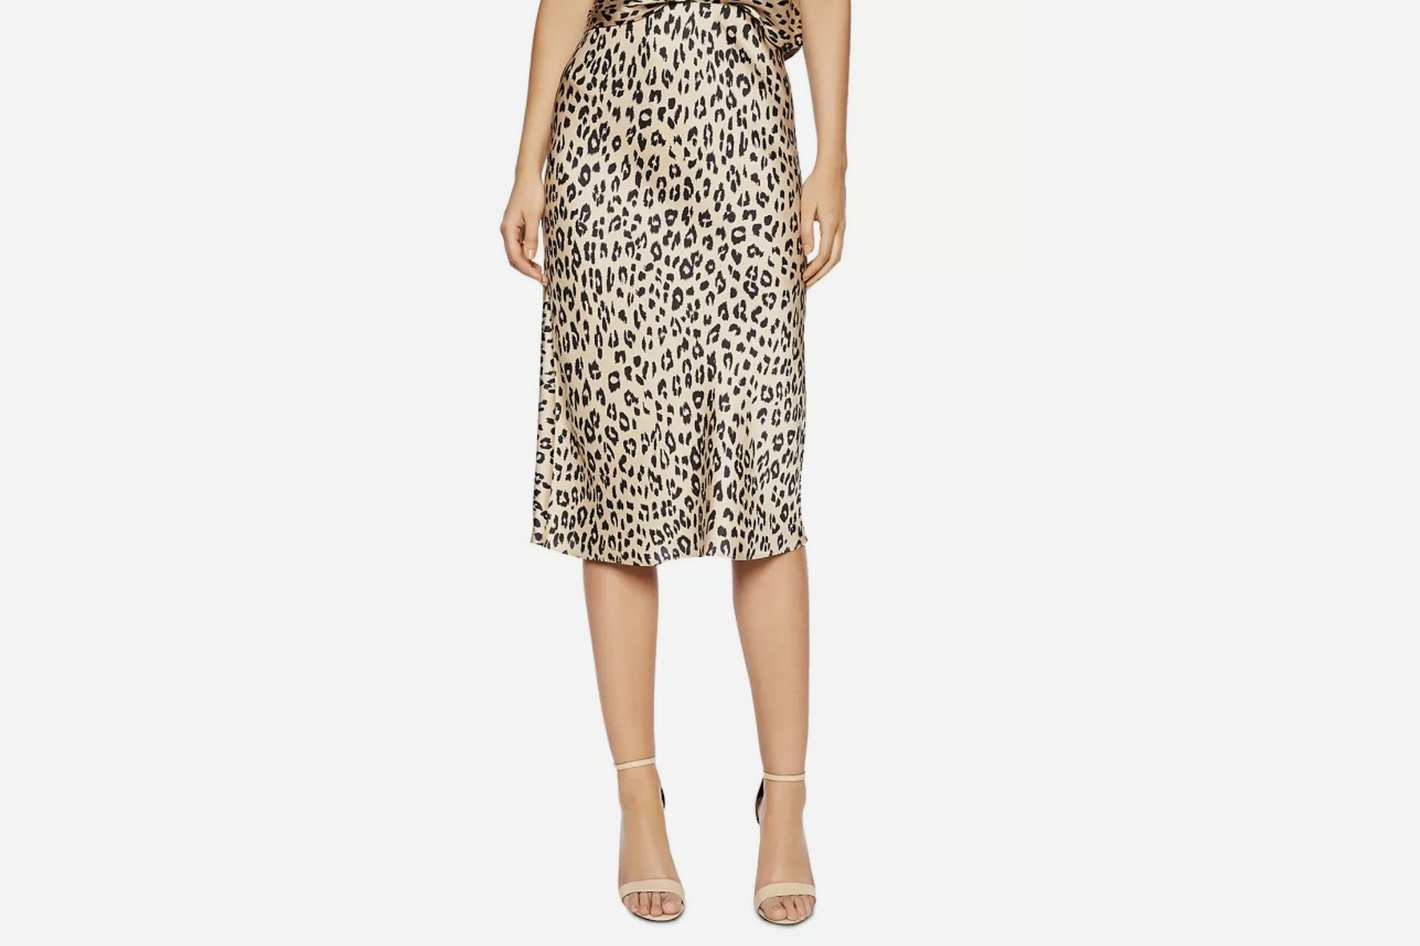 e1f4cd980fcf The Best Leopard Skirts of 2019: Where to Buy the Trend